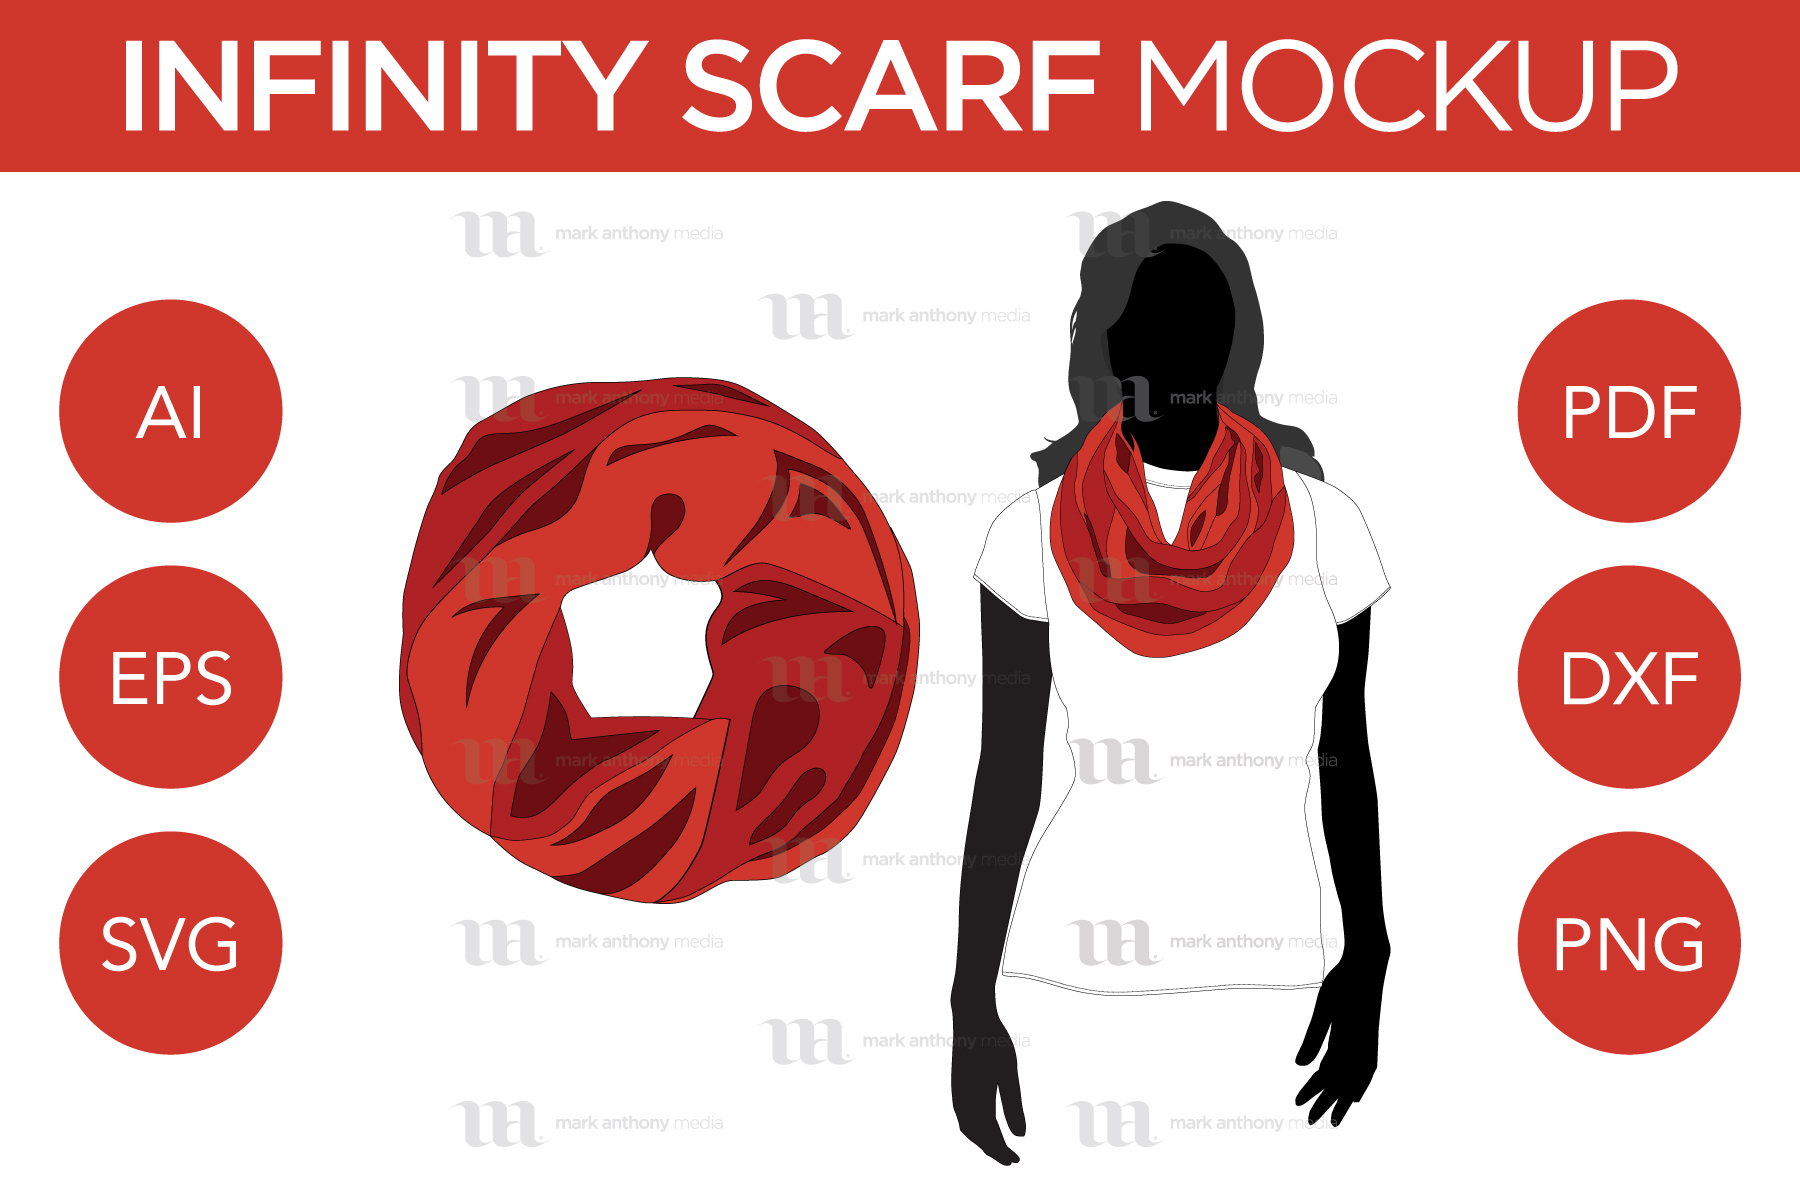 Scarves Bundle - Regular Scarf & Infinity Scarf - Mockup and Template - 5 Scarves Total, 2 Styles, Multiple Angles, Layered, Detailed and Editable Vector in EPS, SVG, AI, PNG, DXF and PDF